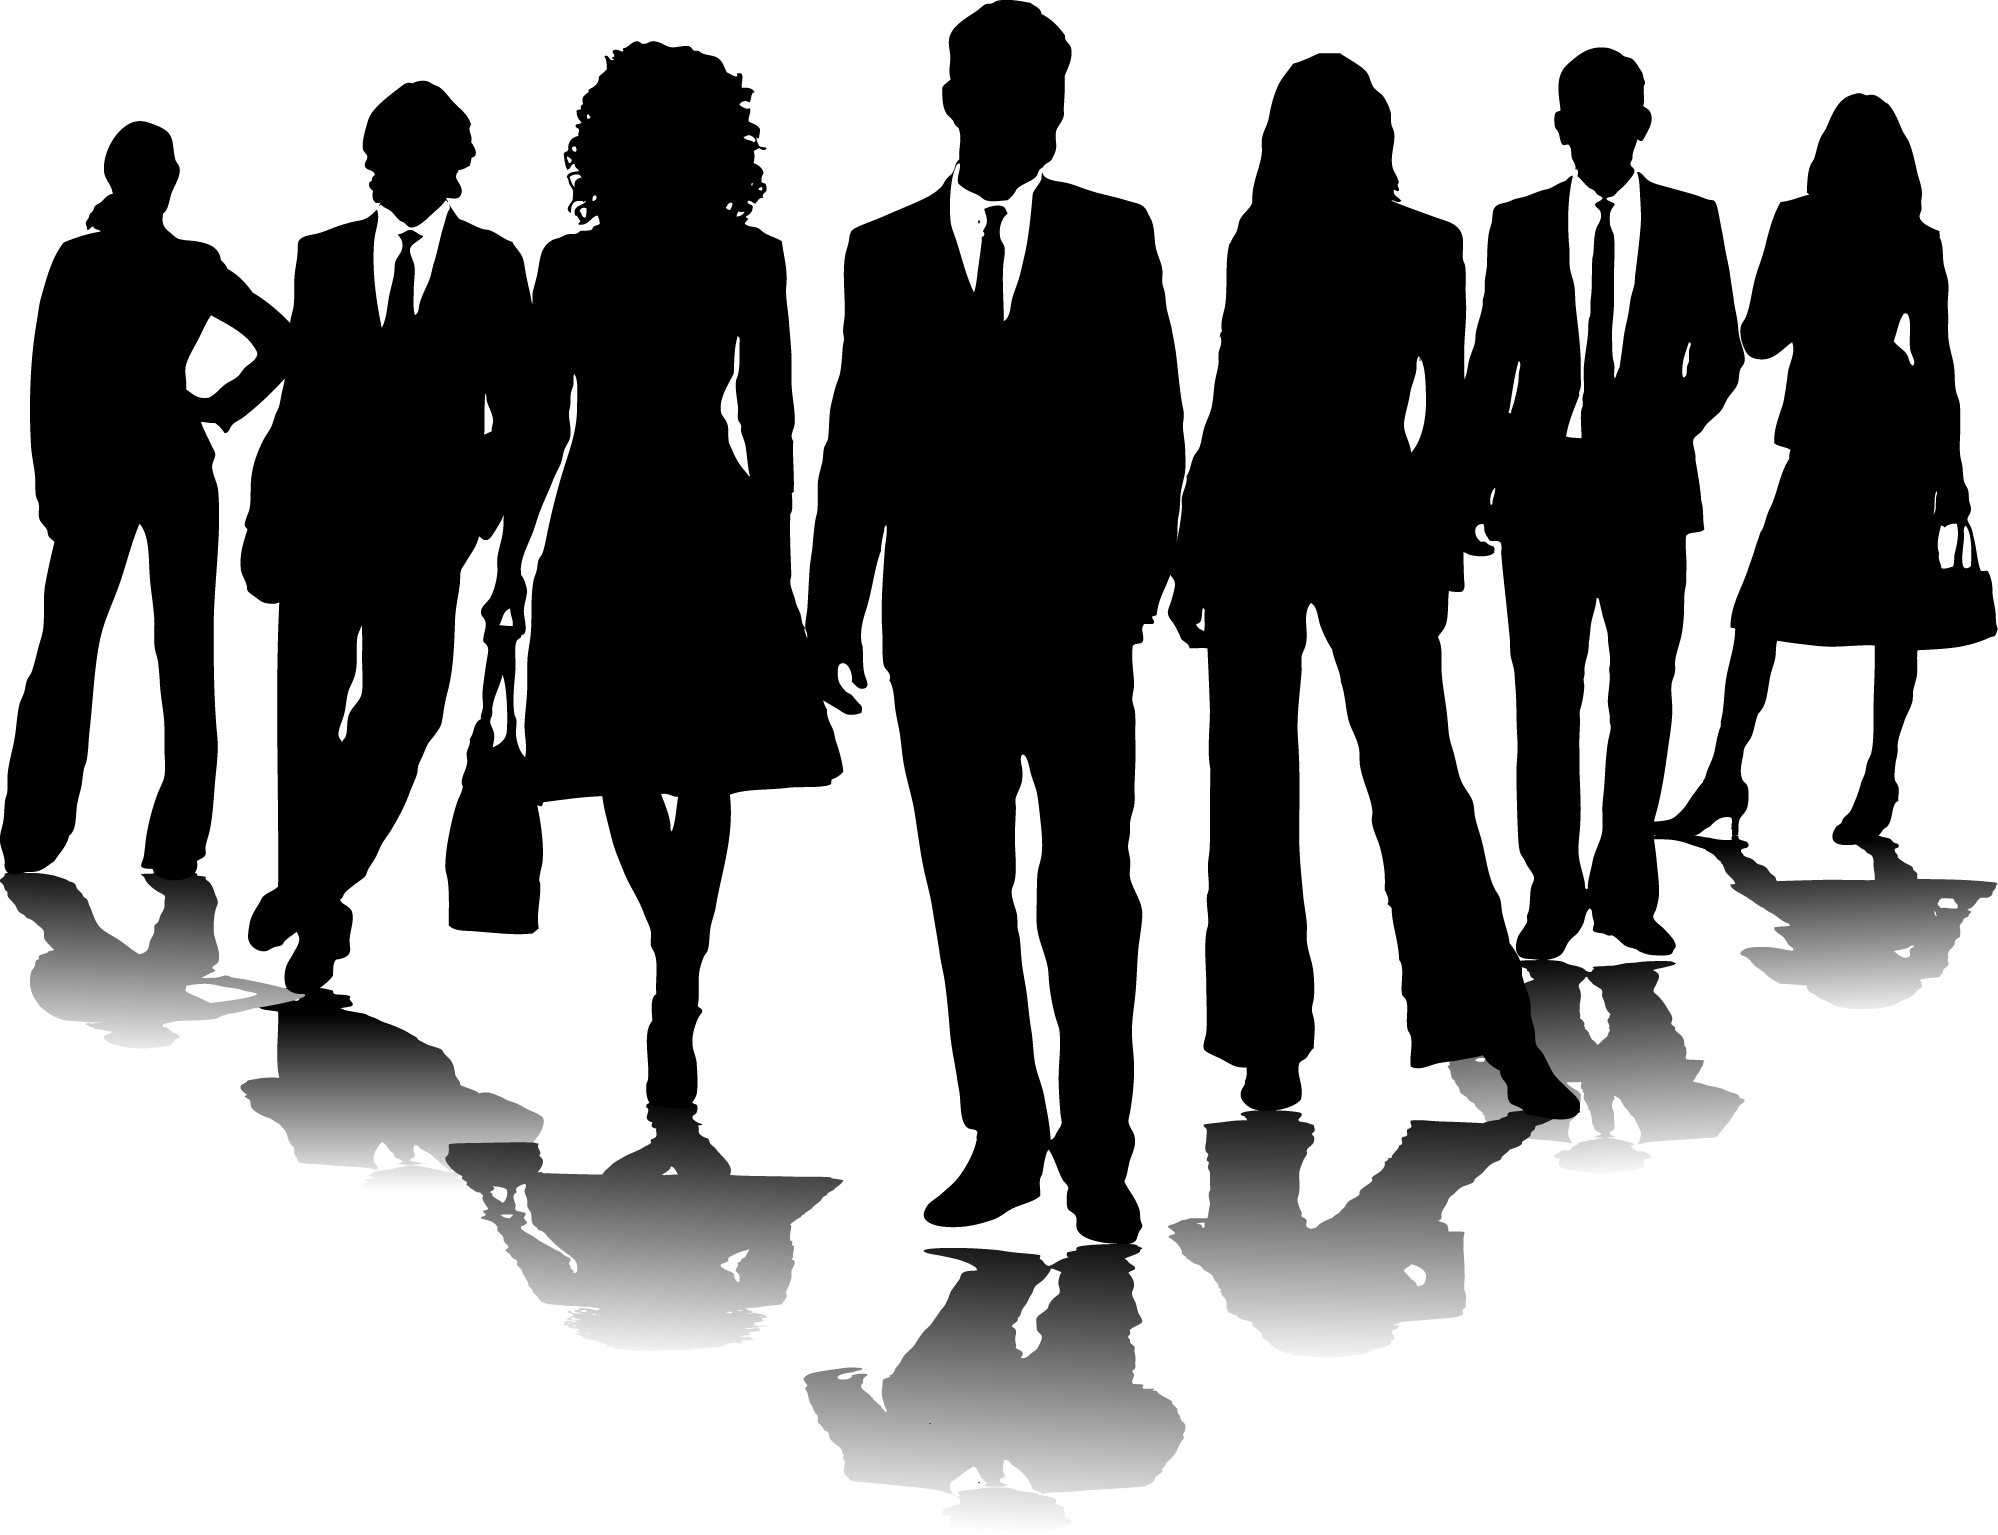 Business People Clipart Free Clipart Ima-Business people clipart free clipart images 2-18